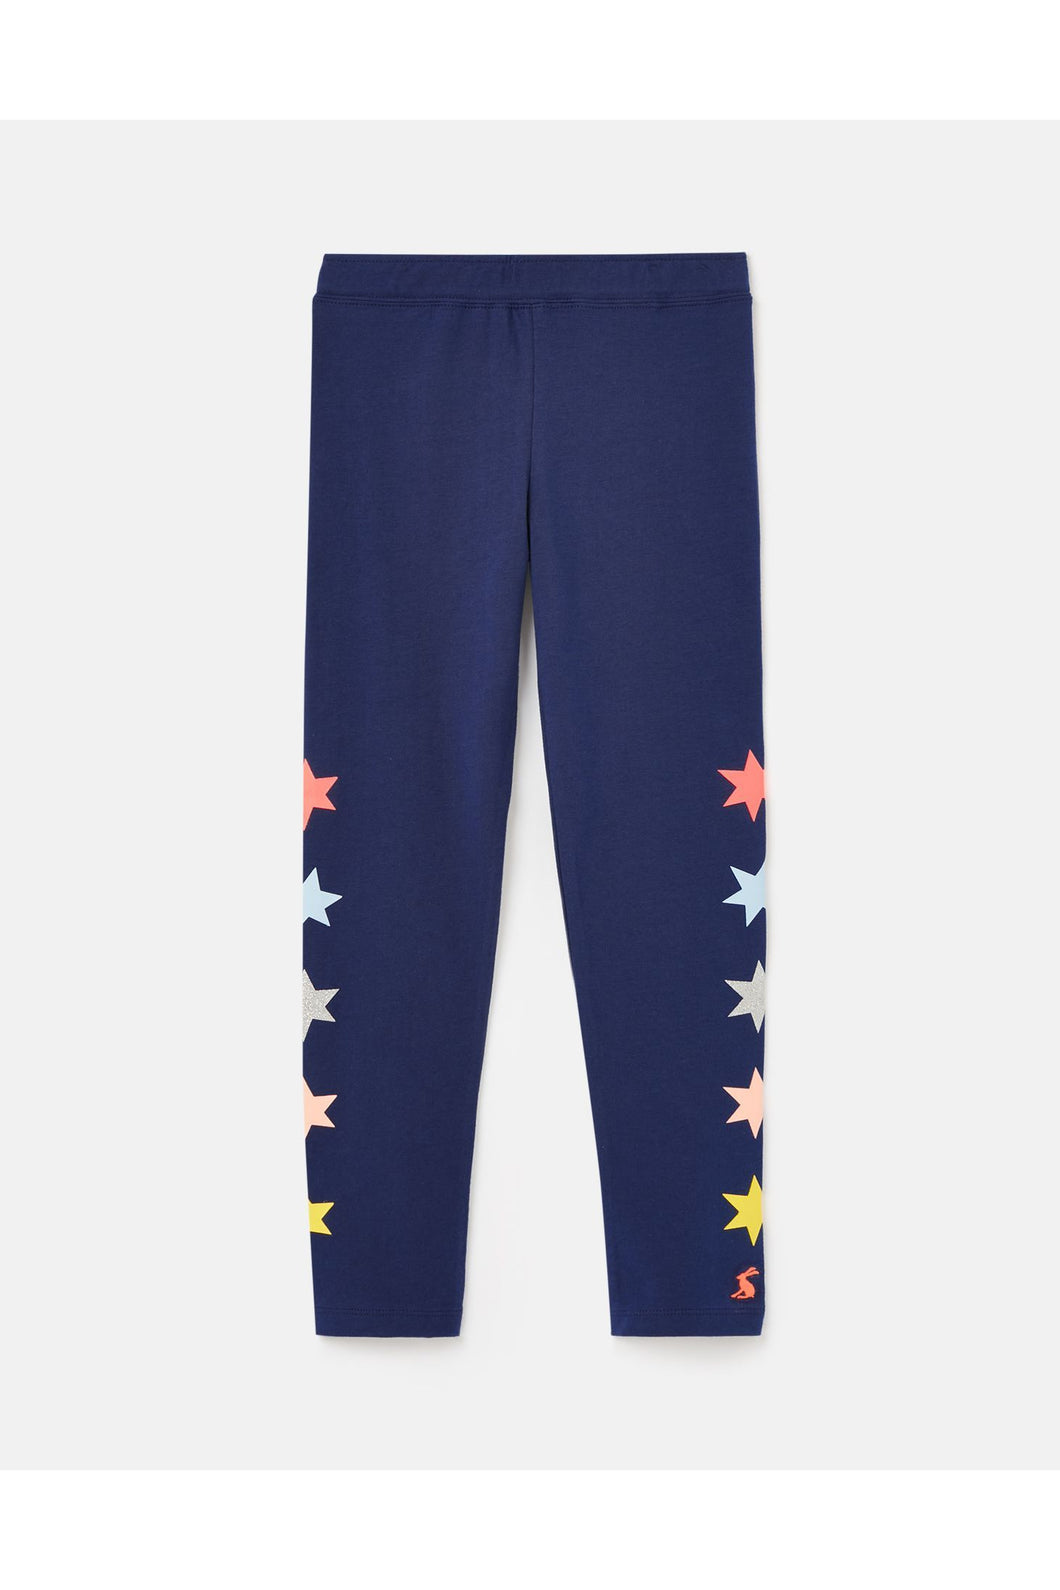 SIDE STARS LEGGING